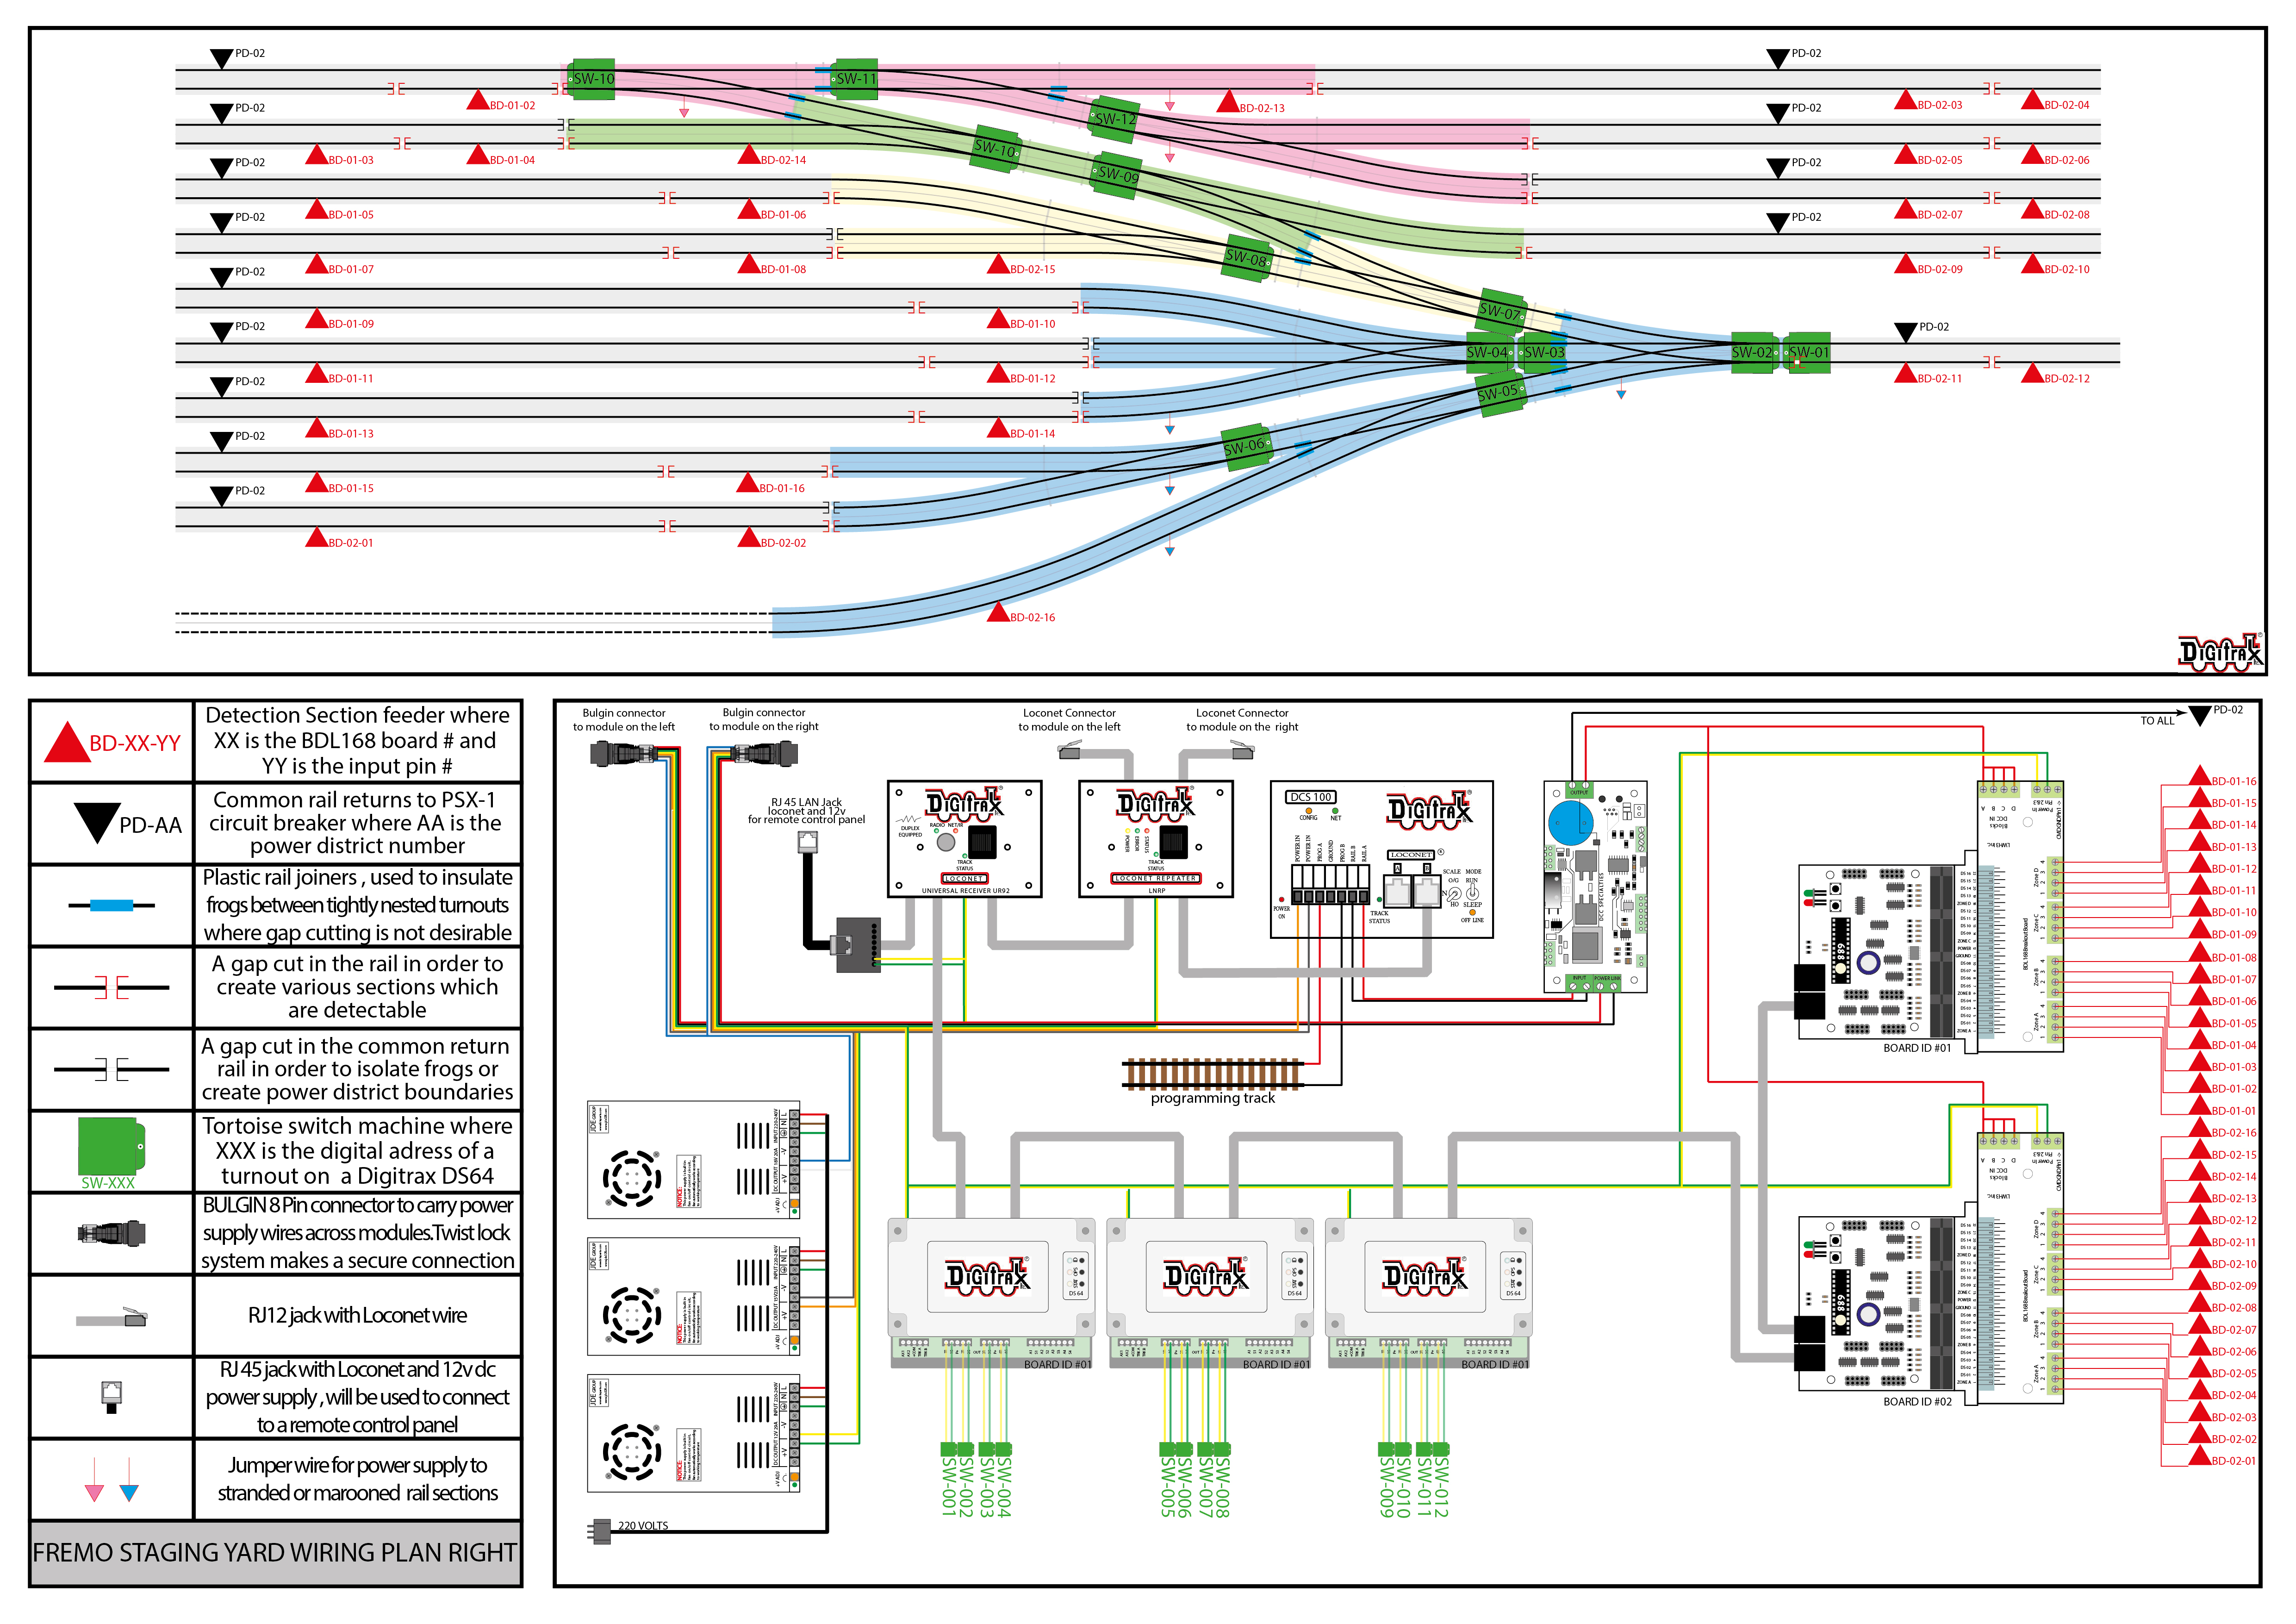 Fleischmann Turntable Wiring Diagram 36 Images Railroad Signal The Modules Vikas Chander Electrical Plan Right Large At Cita